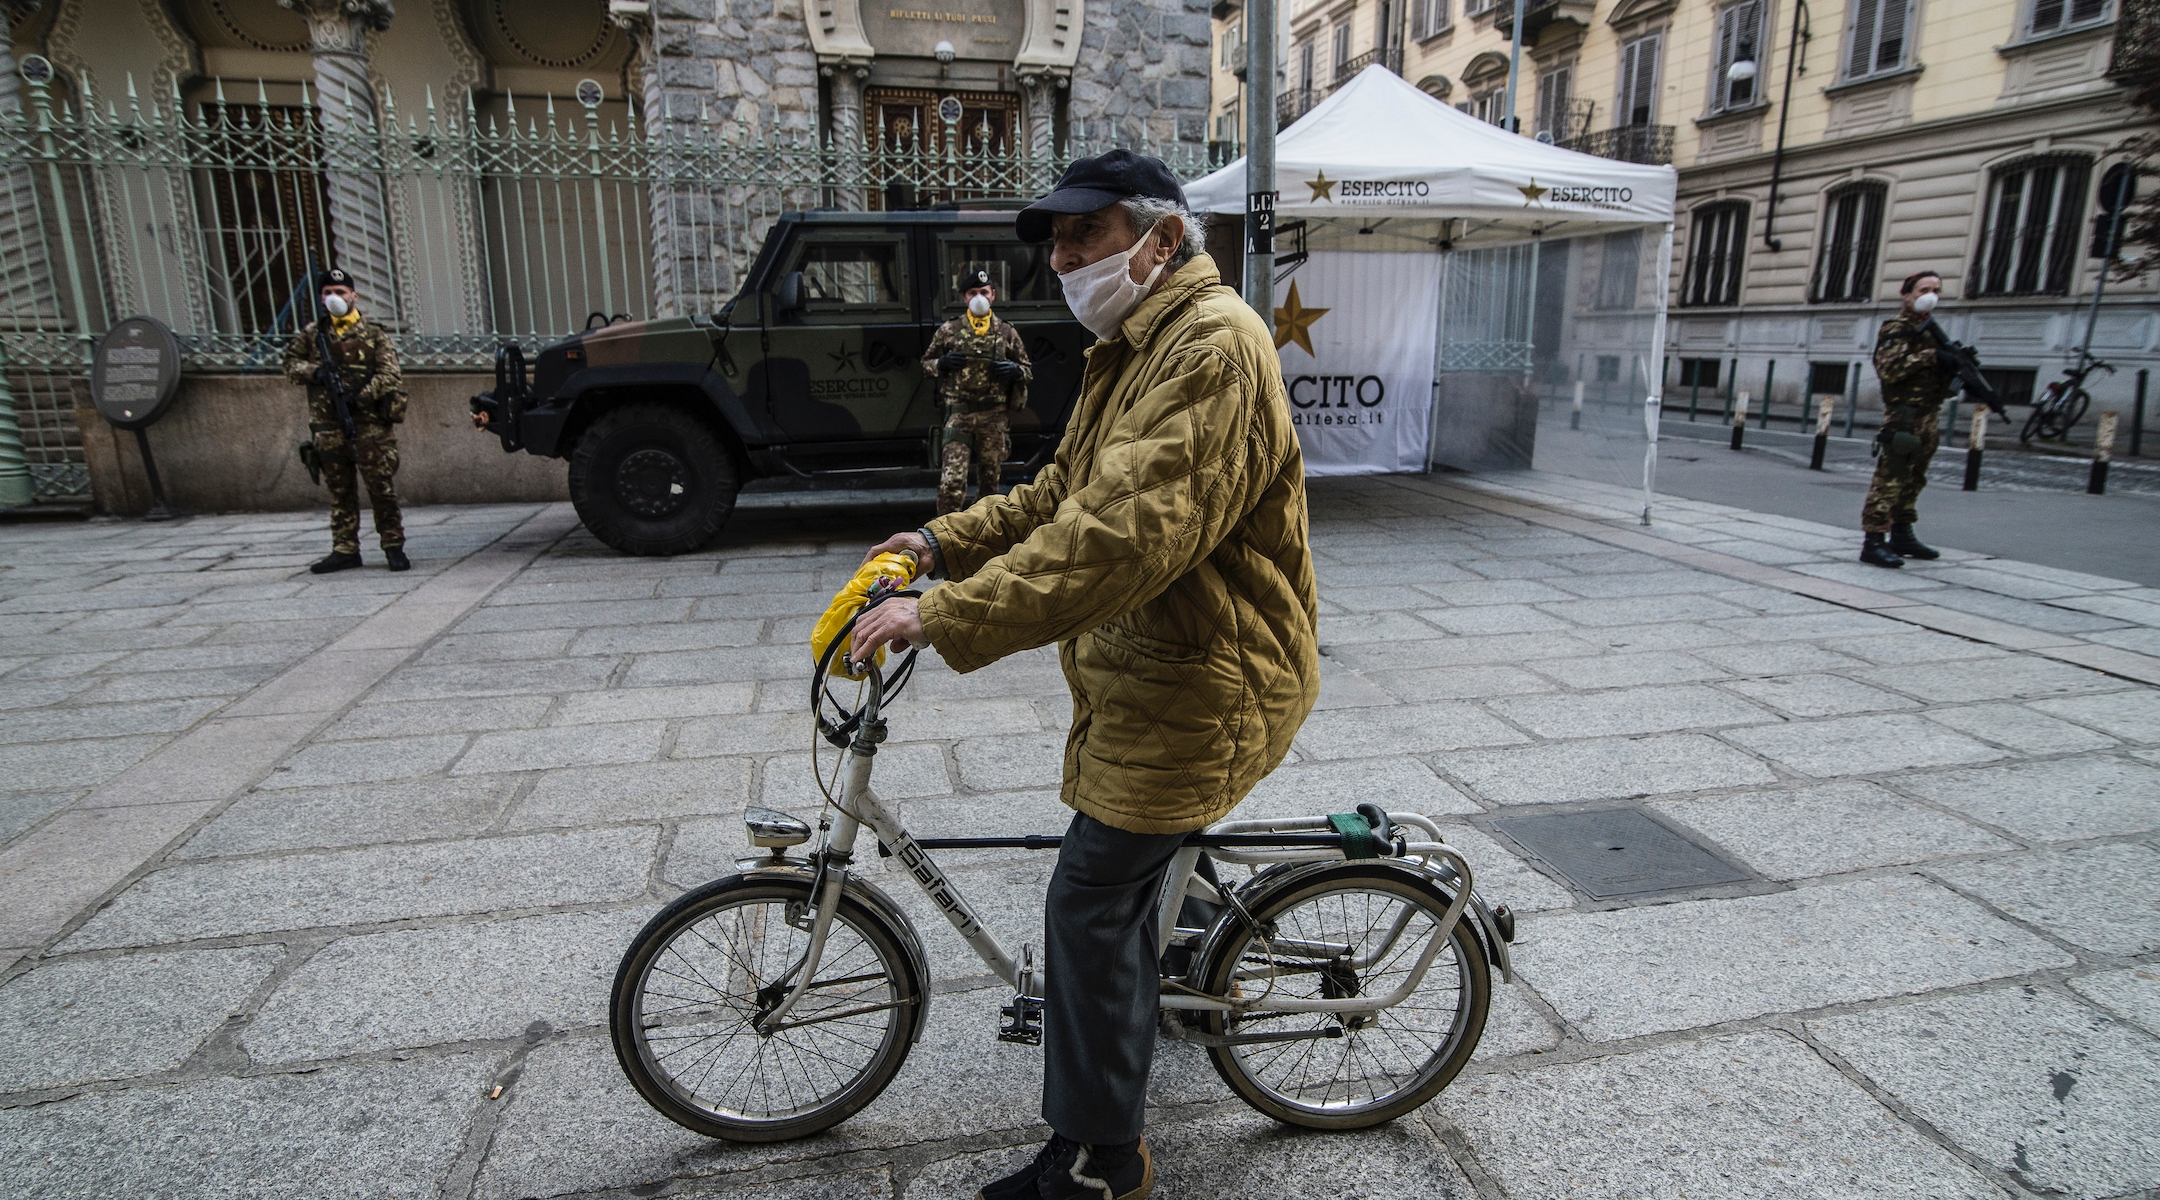 A man rides a bike in front of a synagogue in Turin, Italy, March 18, 2020. (Stefano Guidi/Getty Images)